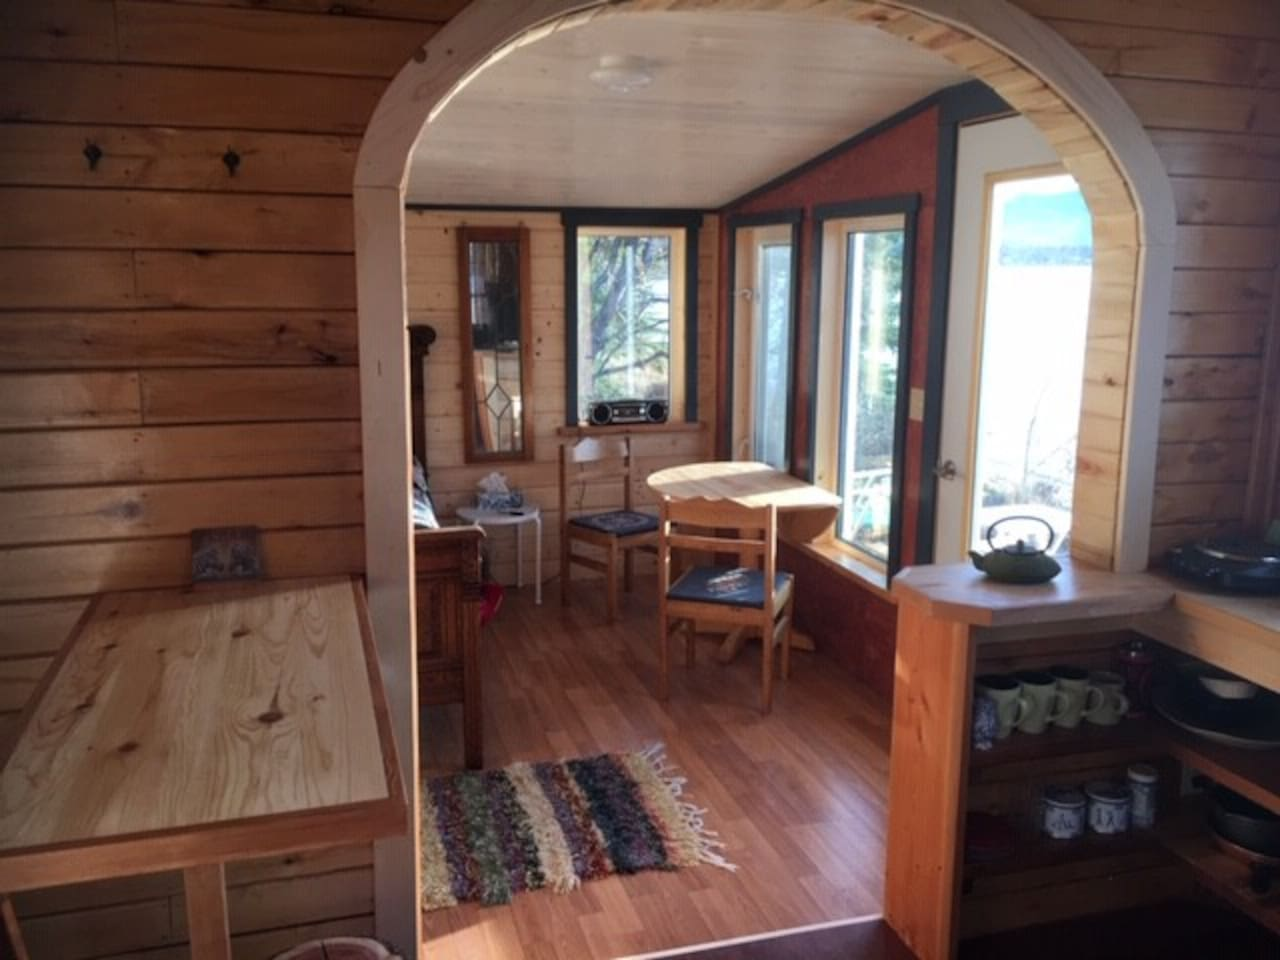 Kitchenette and eating areas